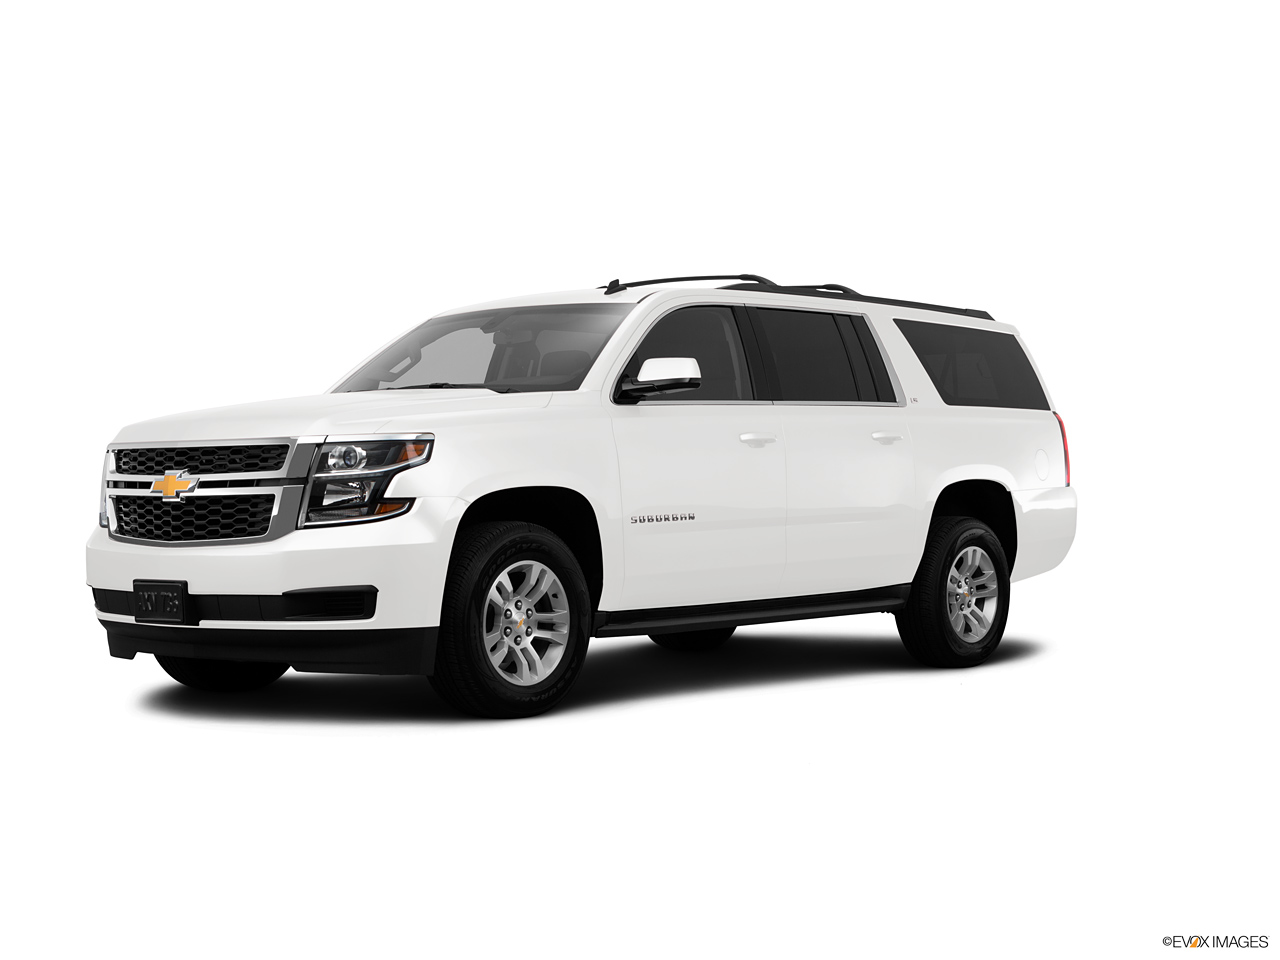 Chevrolet Suburban 2018 5.3L LTZ 2WD in UAE: New Car Prices, Specs, Reviews & Photos | YallaMotor